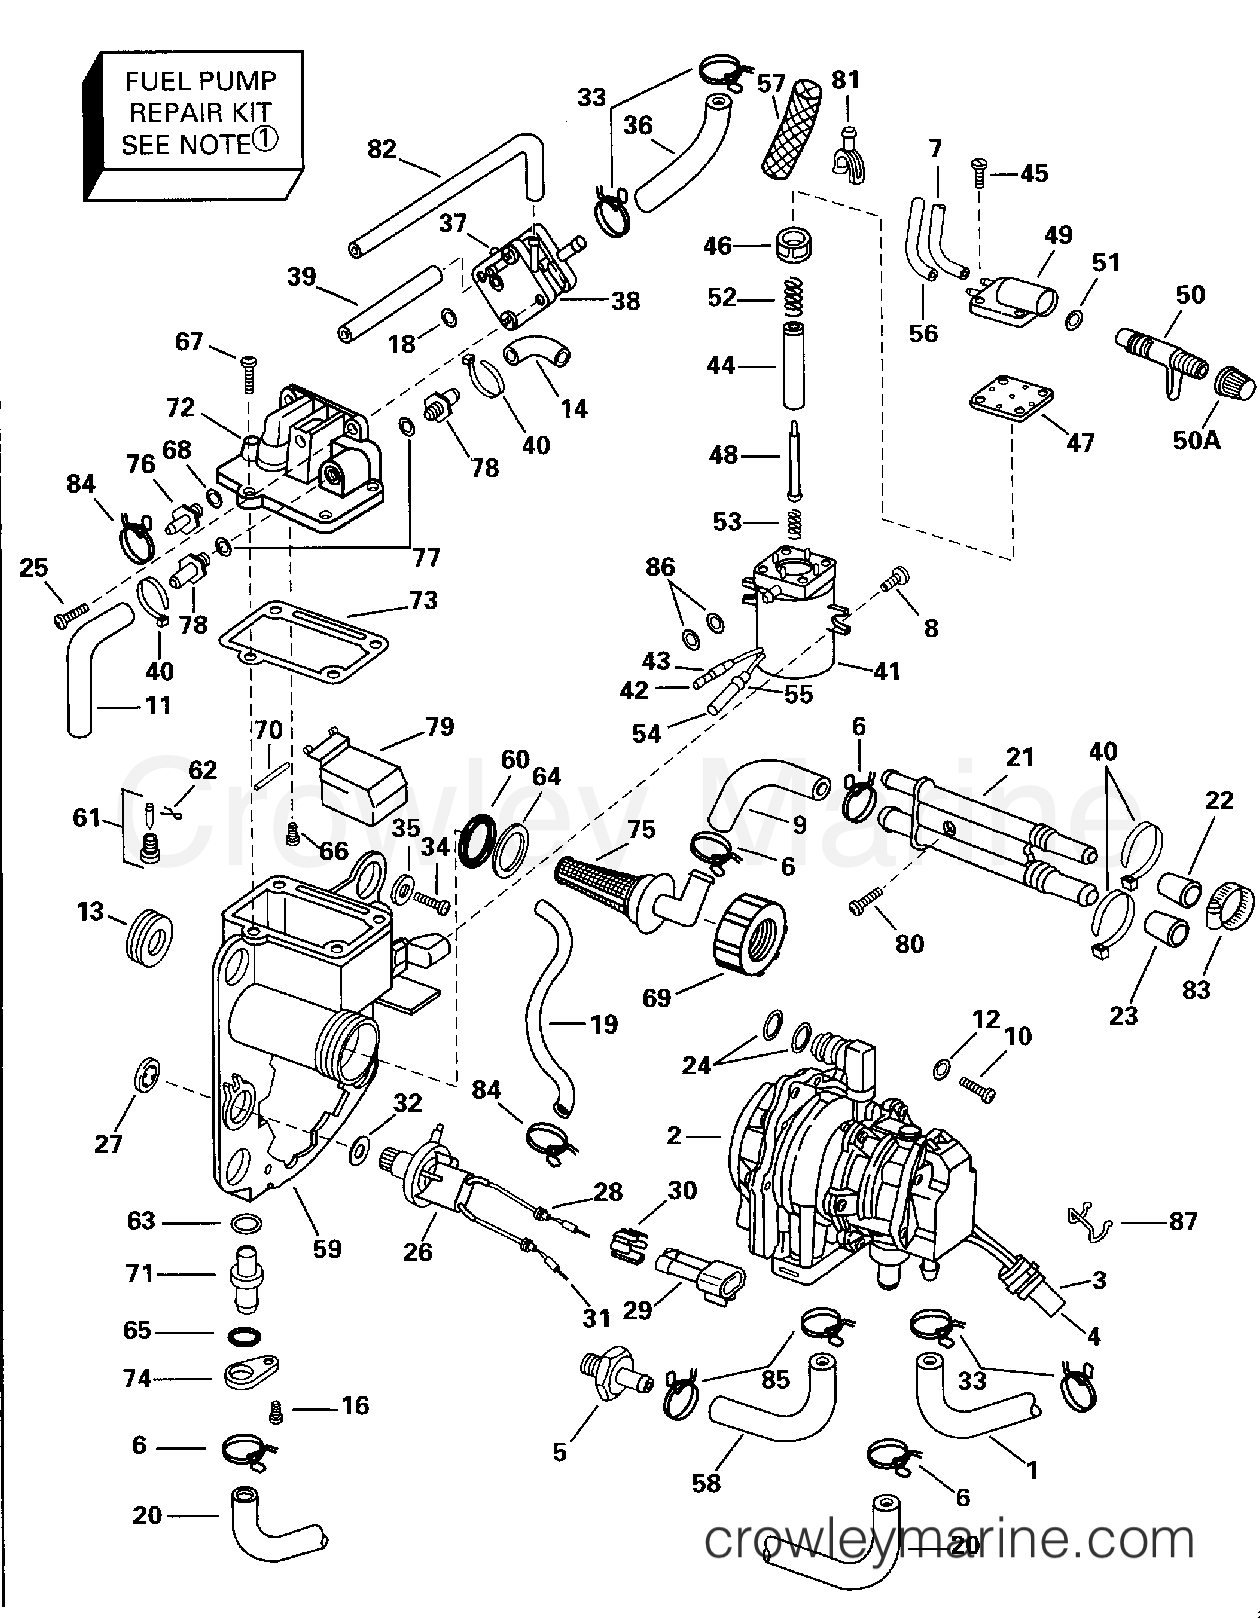 Fuel Bracket Amp Components